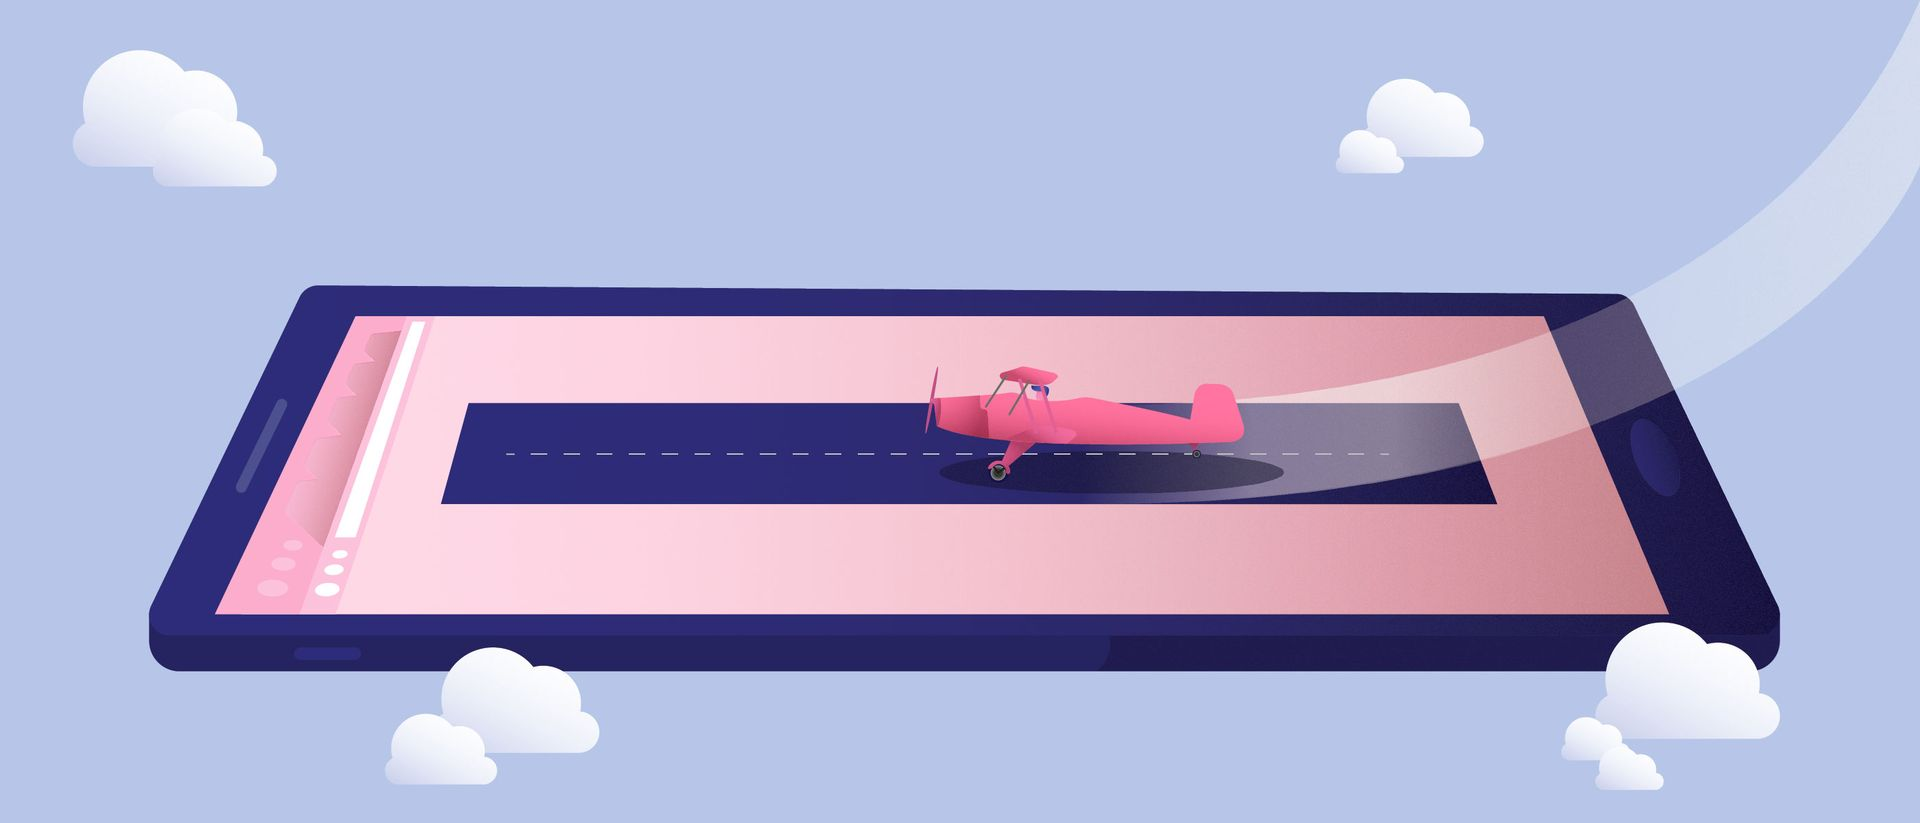 illustration of a plane on a mobile device by Niall Green